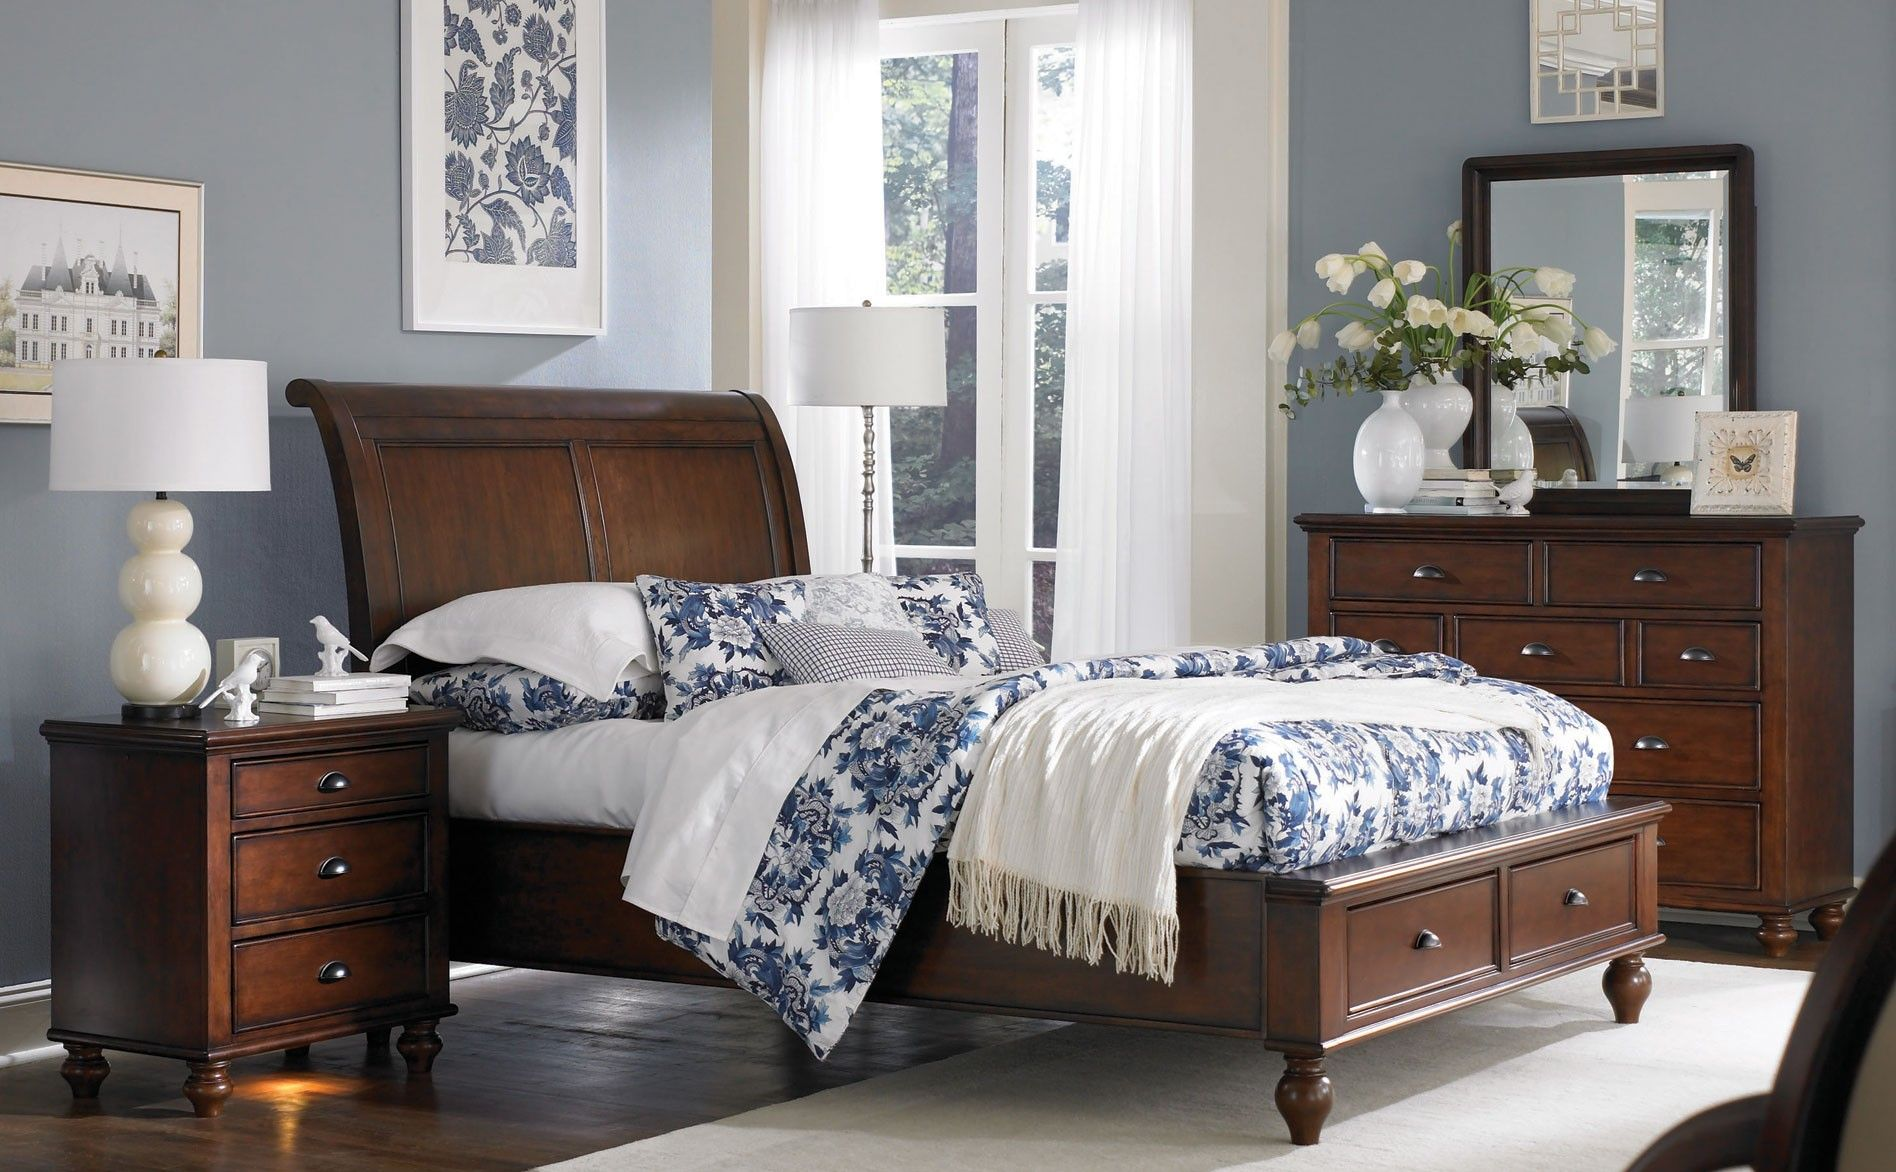 Bedroom color ideas with cherry furniture hubbyus projects